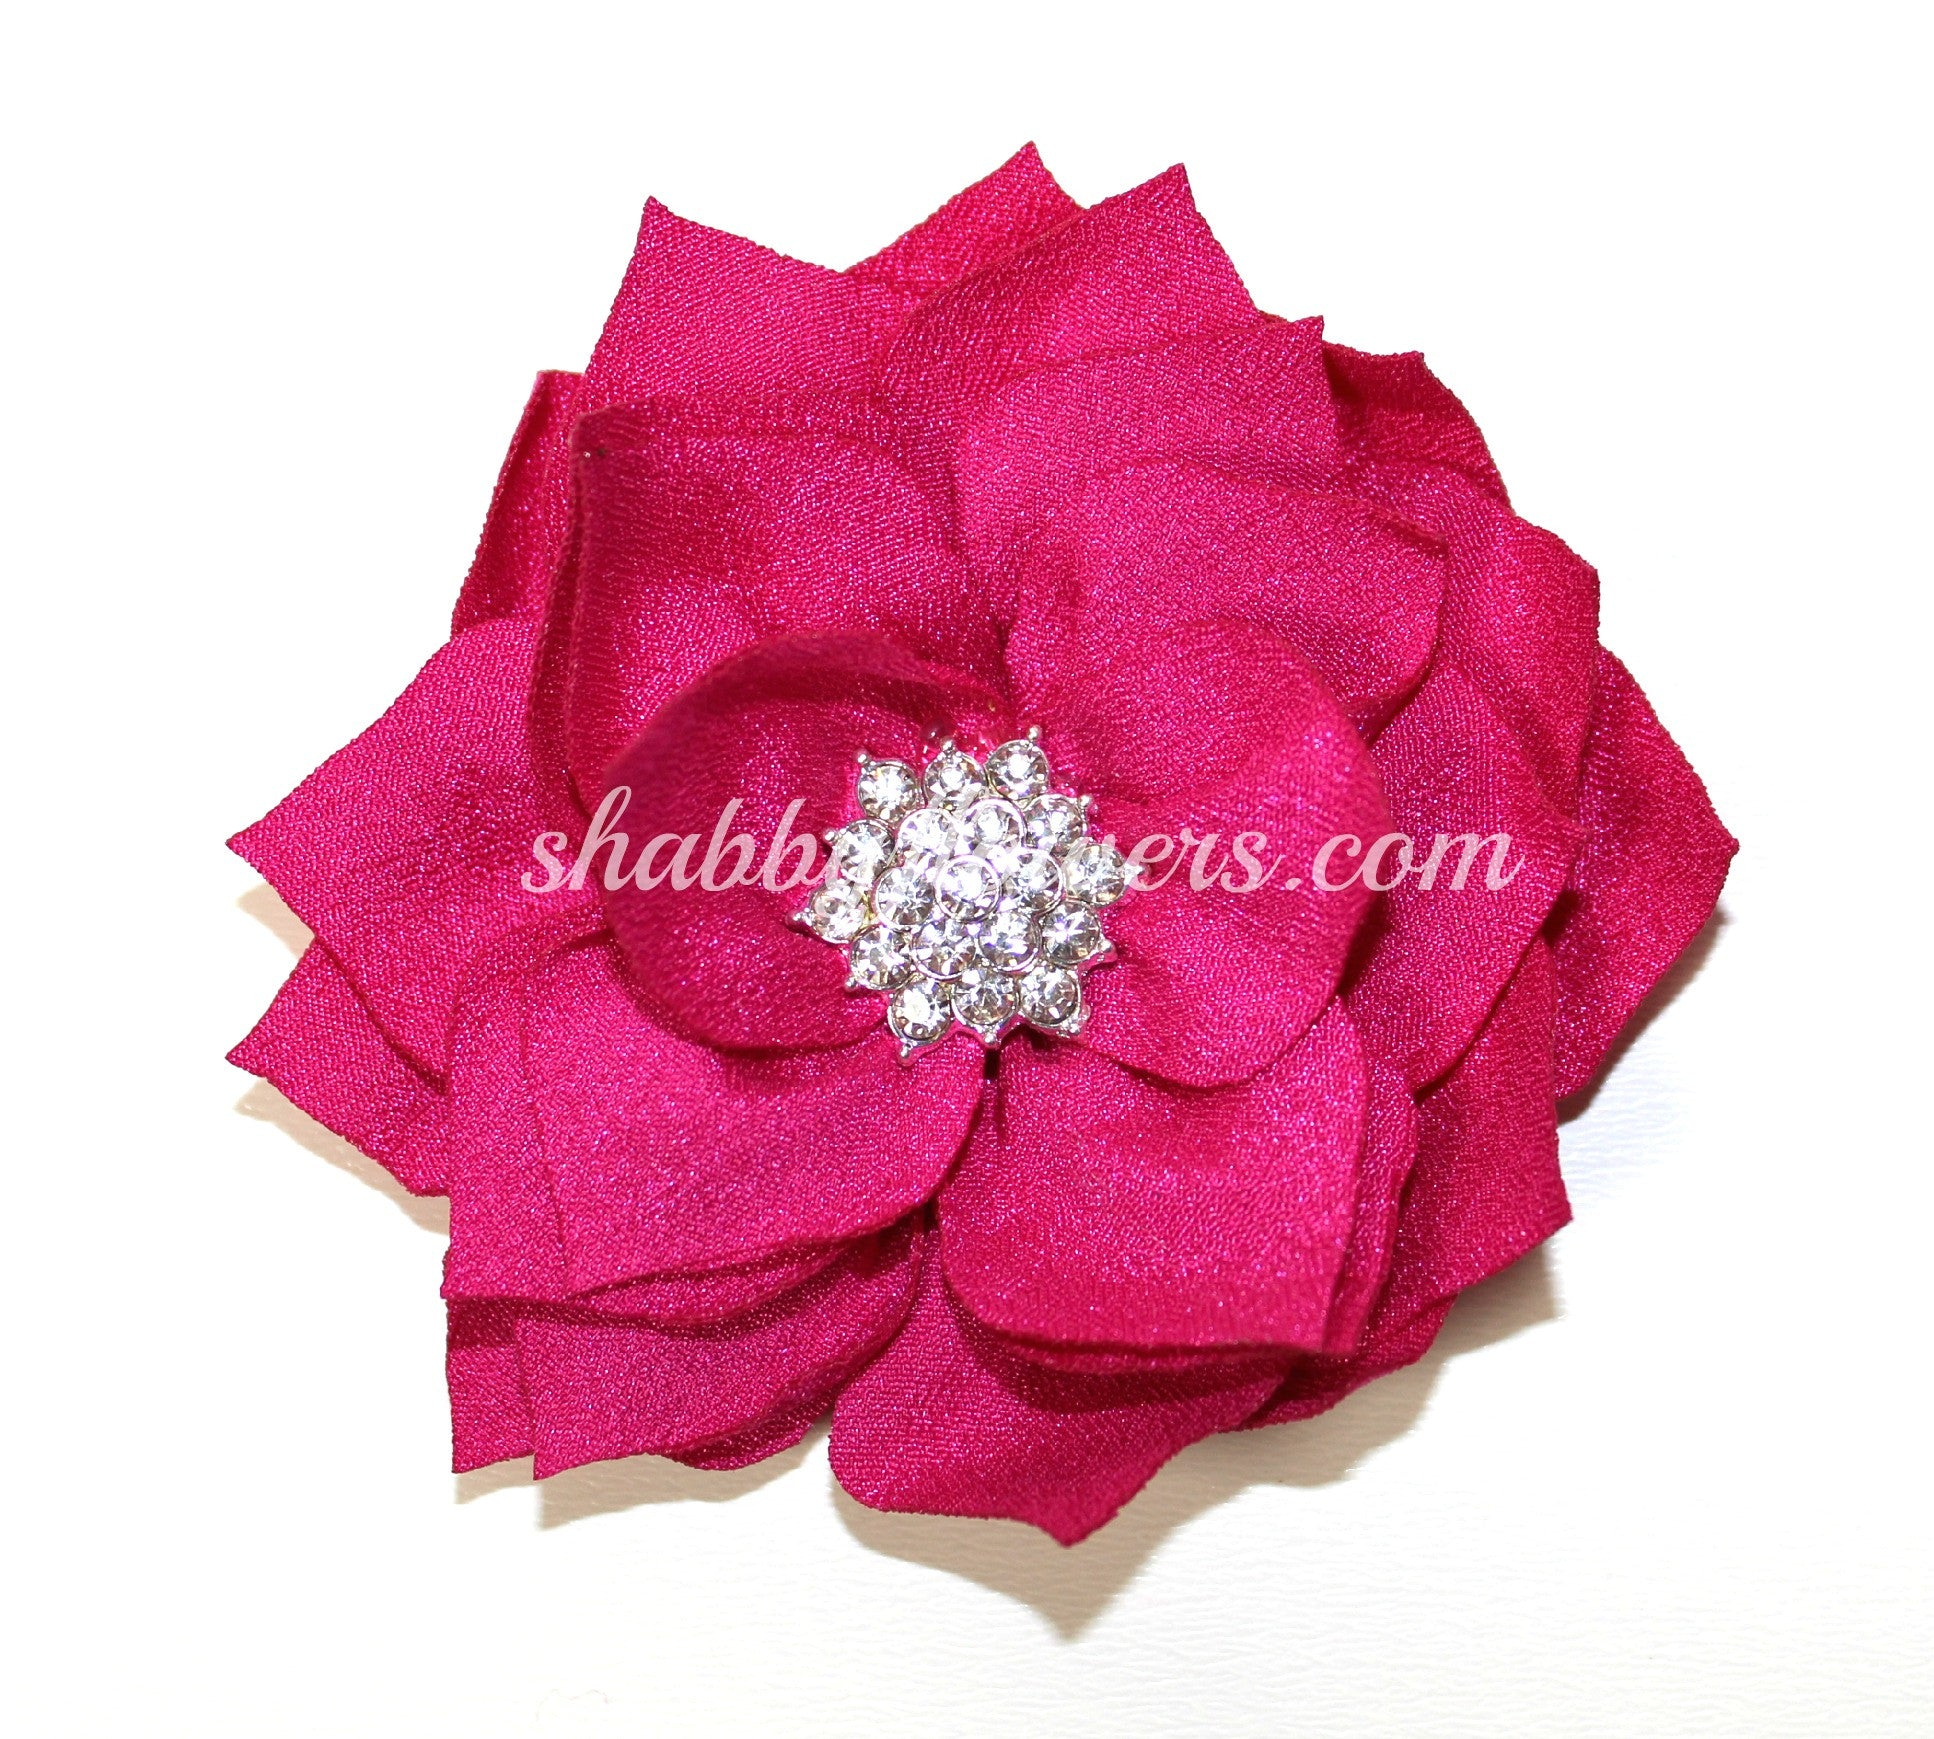 Lotus Rhinestone Flower - Hot Pink - shabbyflowers.com